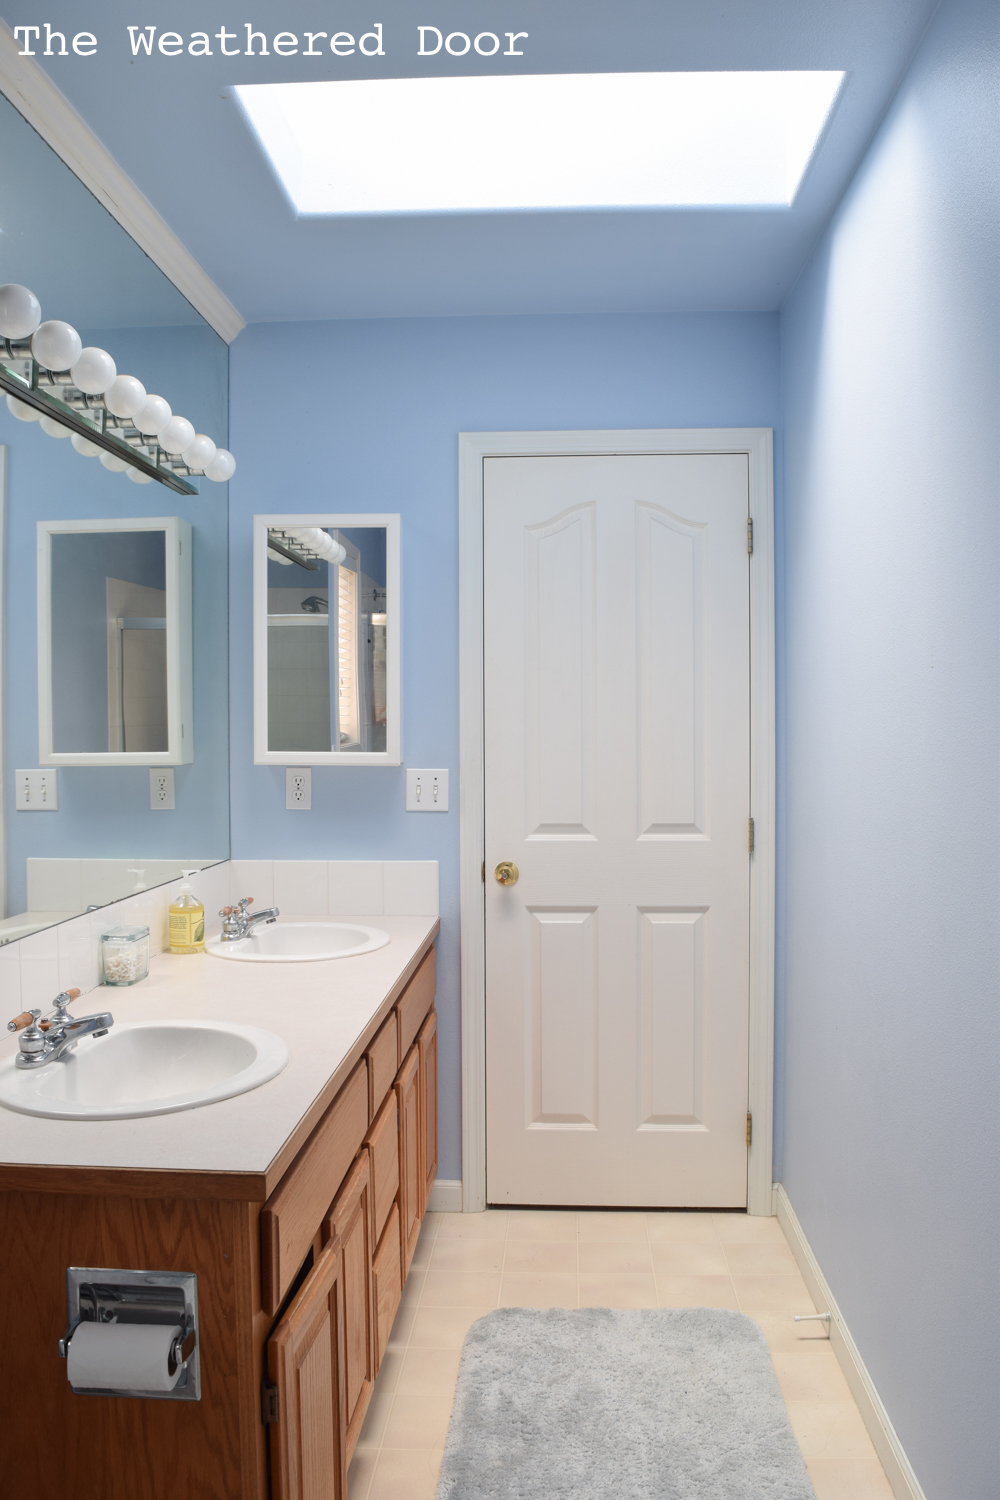 Gray and White Guest Bathroom Reveal - The Weathered Door